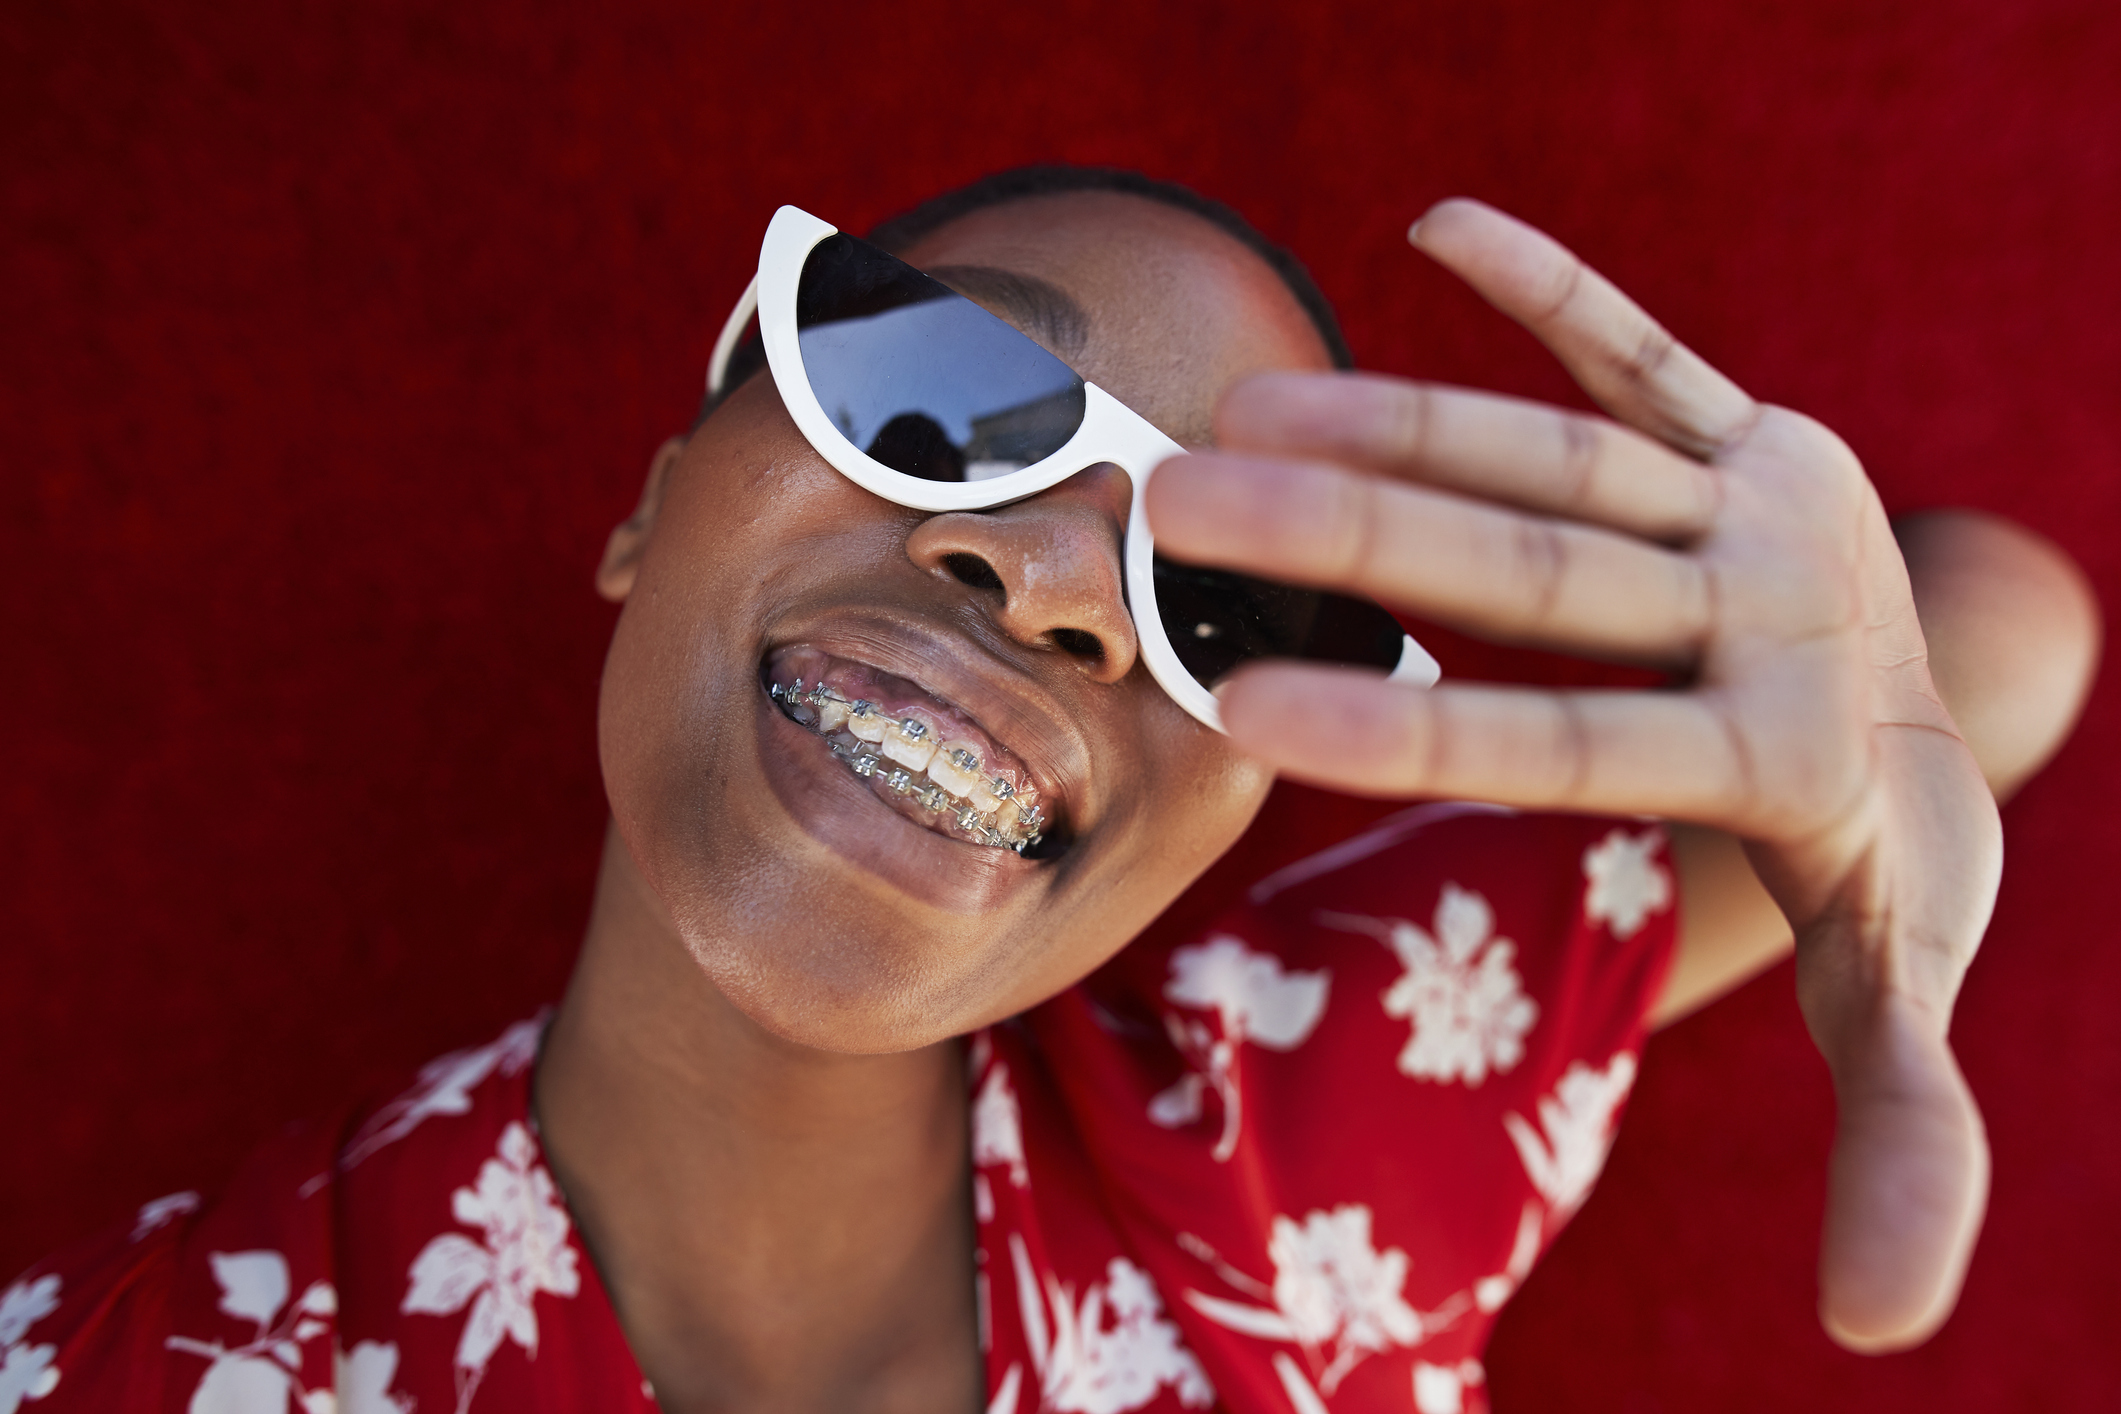 Close-up of smiling woman with braces with her hand up